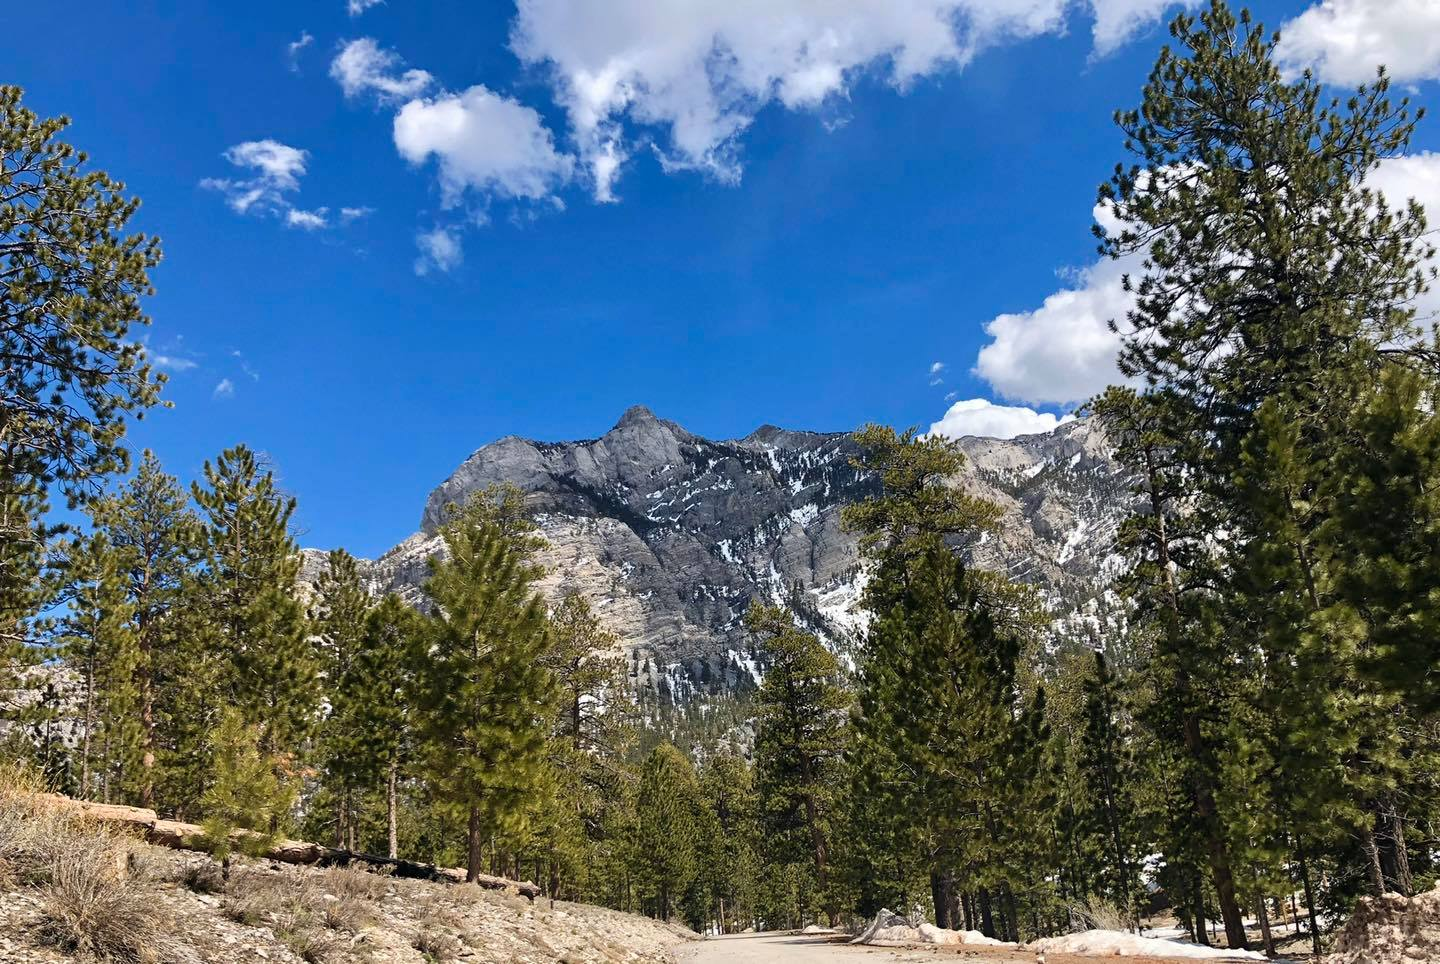 Spring Mountains National Recreation Area near Mt. Charleston.